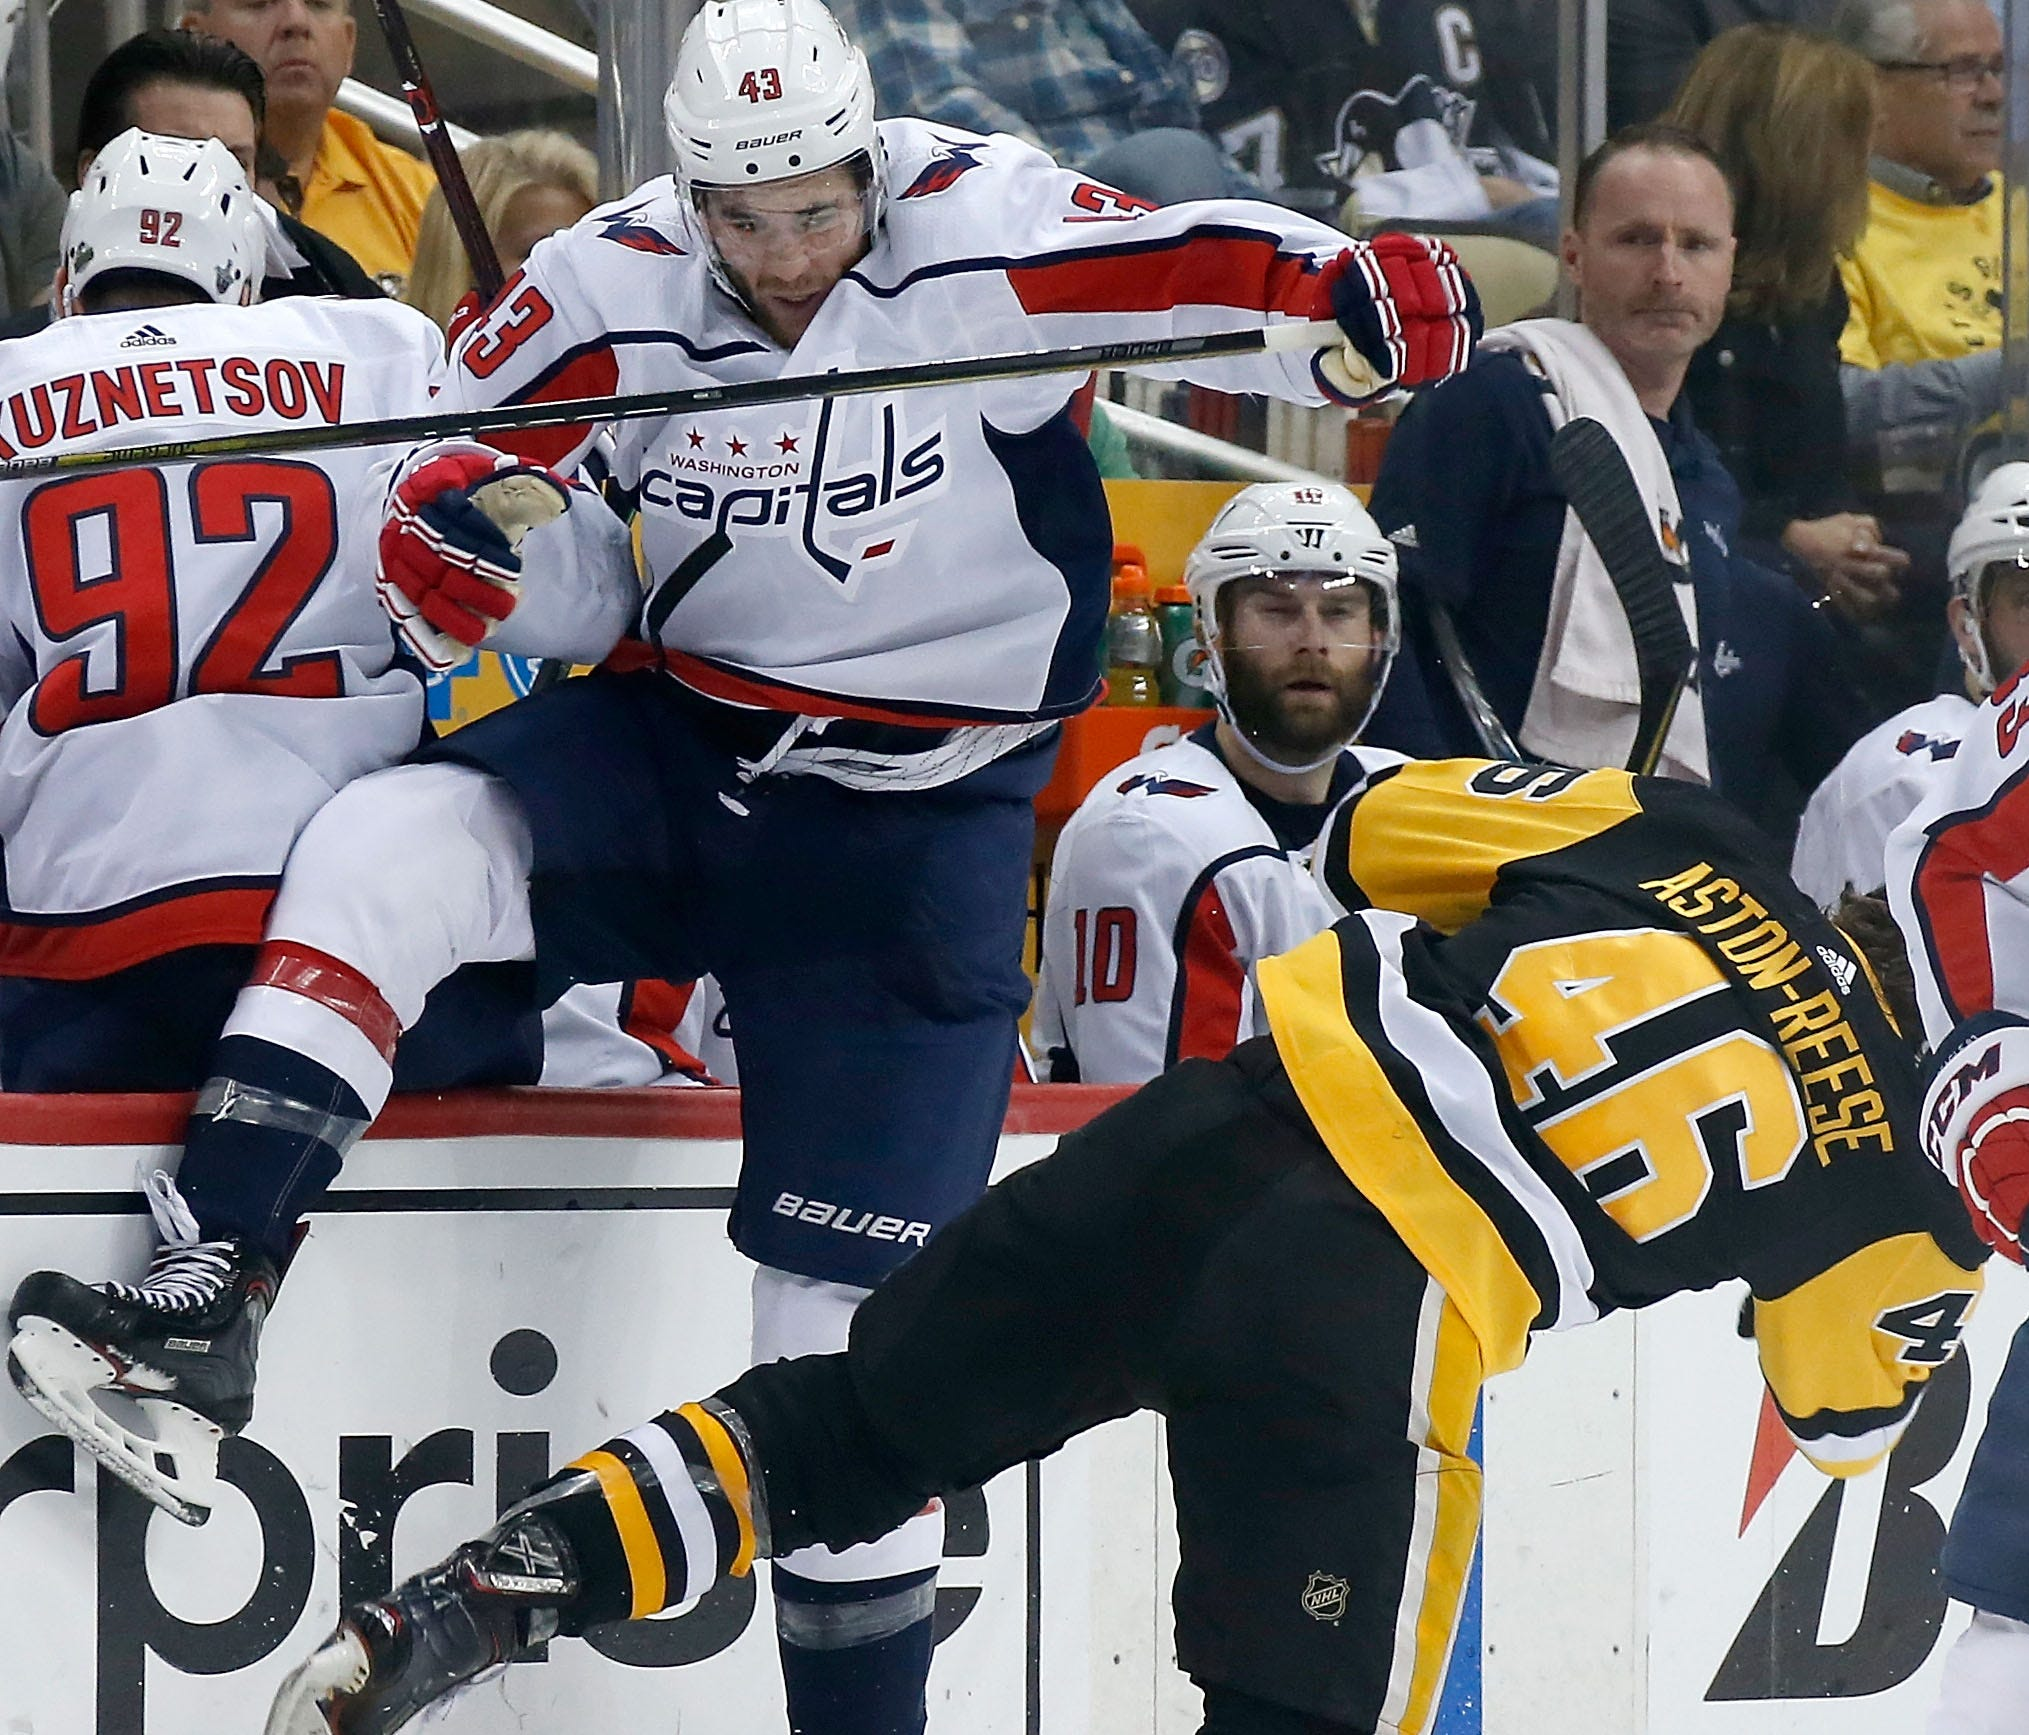 Capitals forward Tom Wilson delivers a huge hit against Pittsburgh's Zach Aston-Reese.